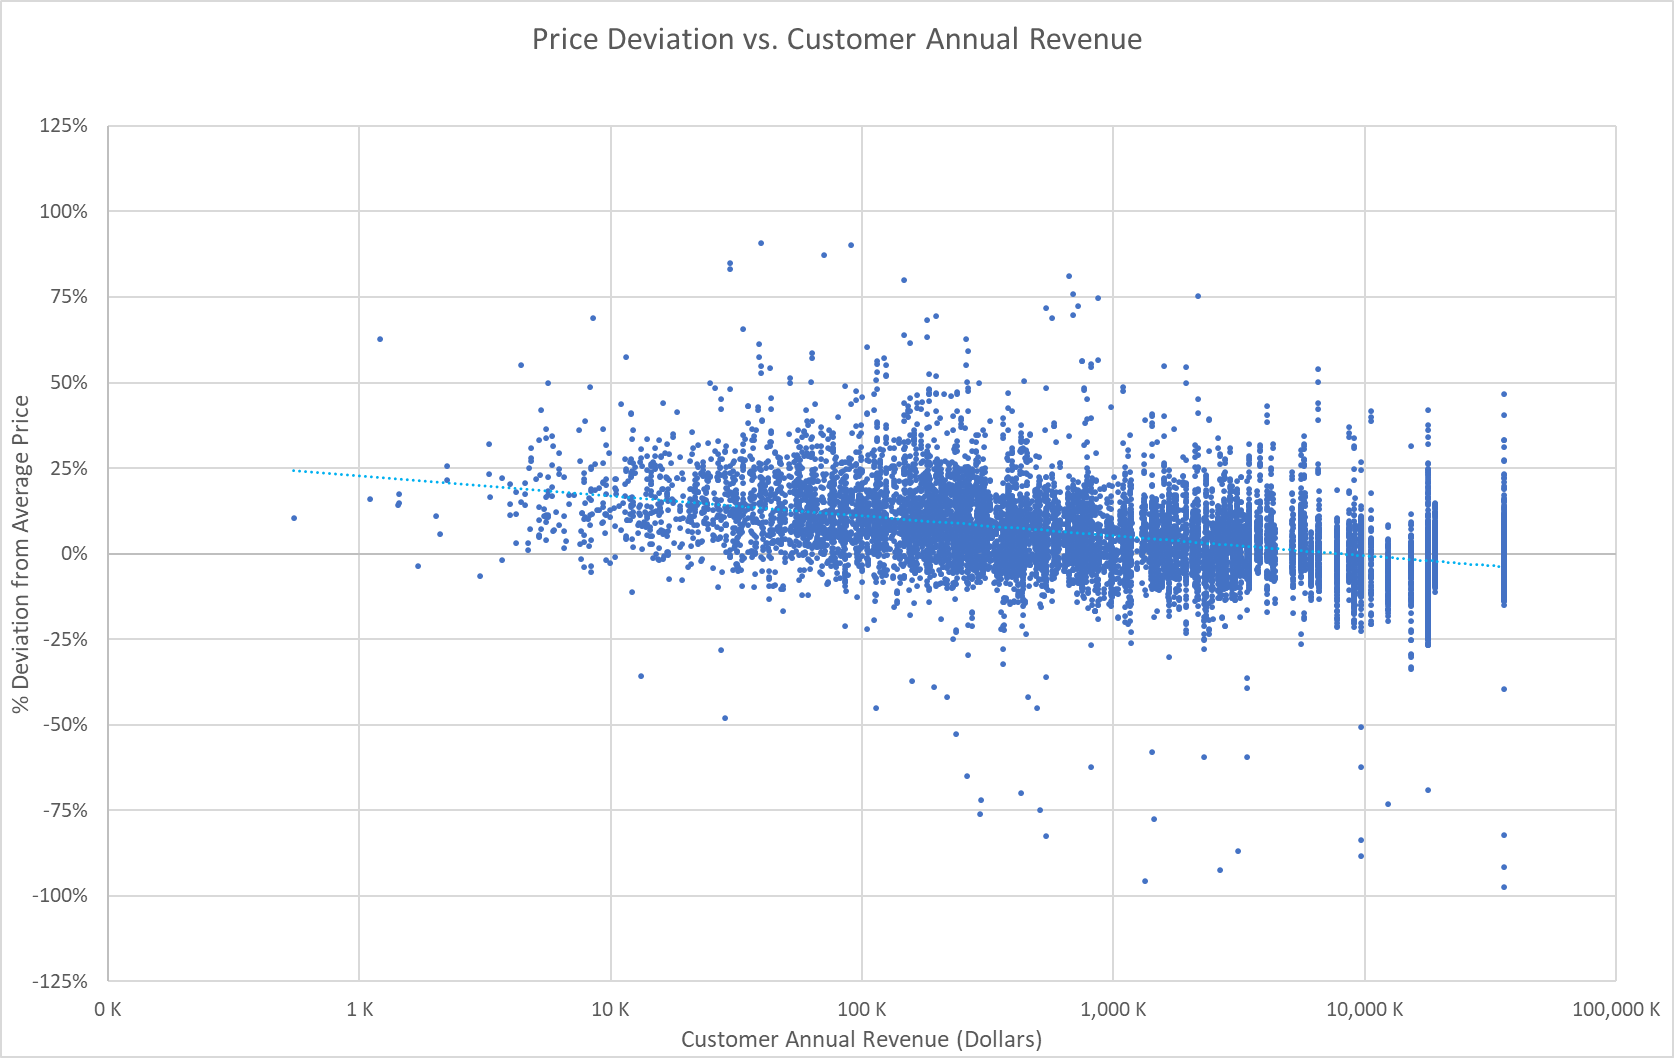 Pricing Analytics: Price Deviation vs. Customer Annual Revenue